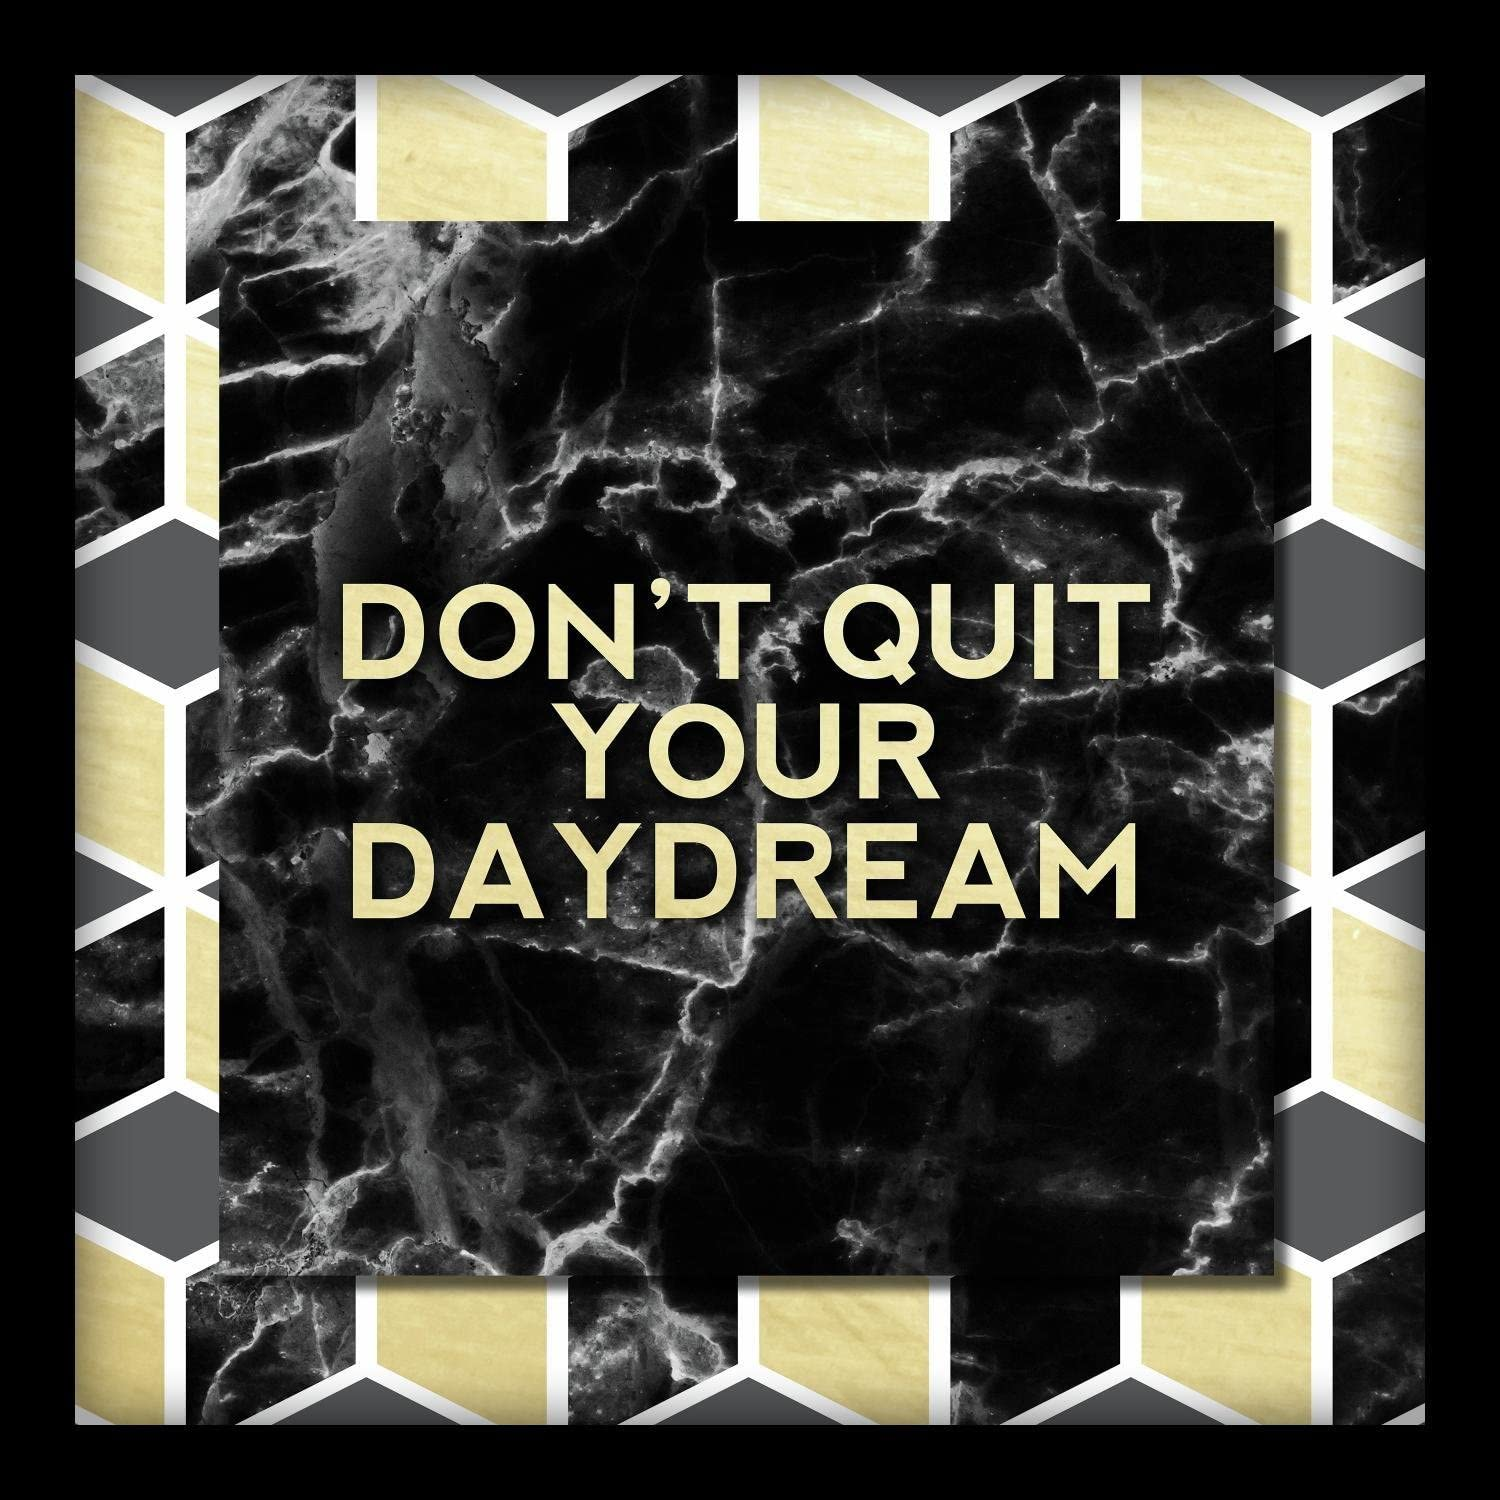 Linden Ave AVE10352 Don't Quit Your Daydream Shadowbox Wall Art